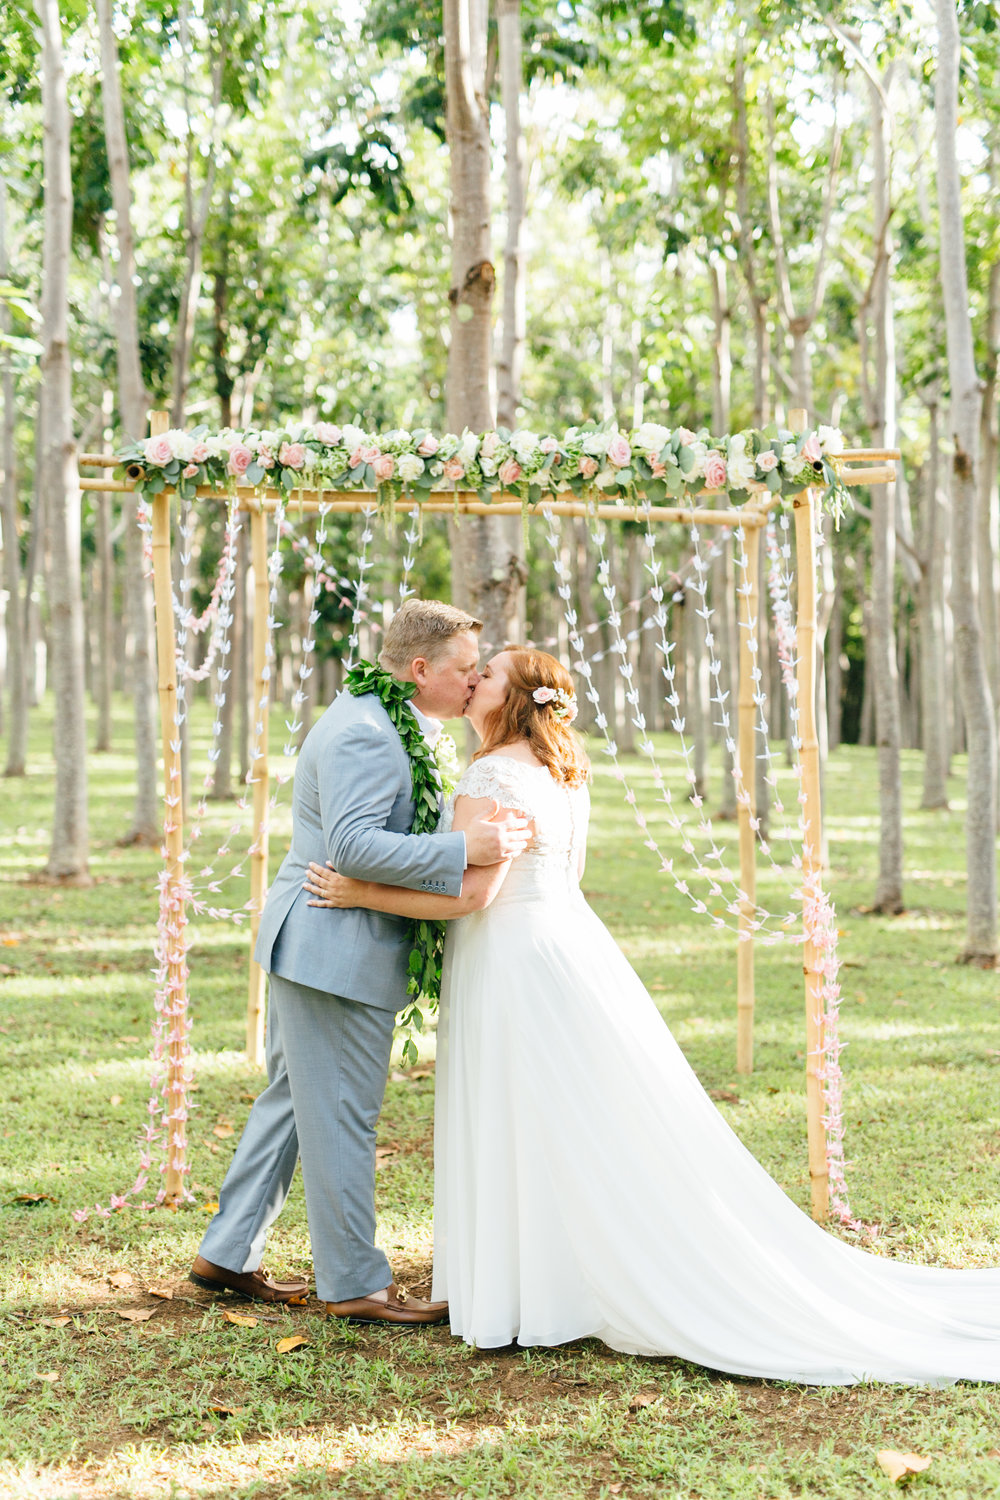 Simple Boho Decor for This Elopement